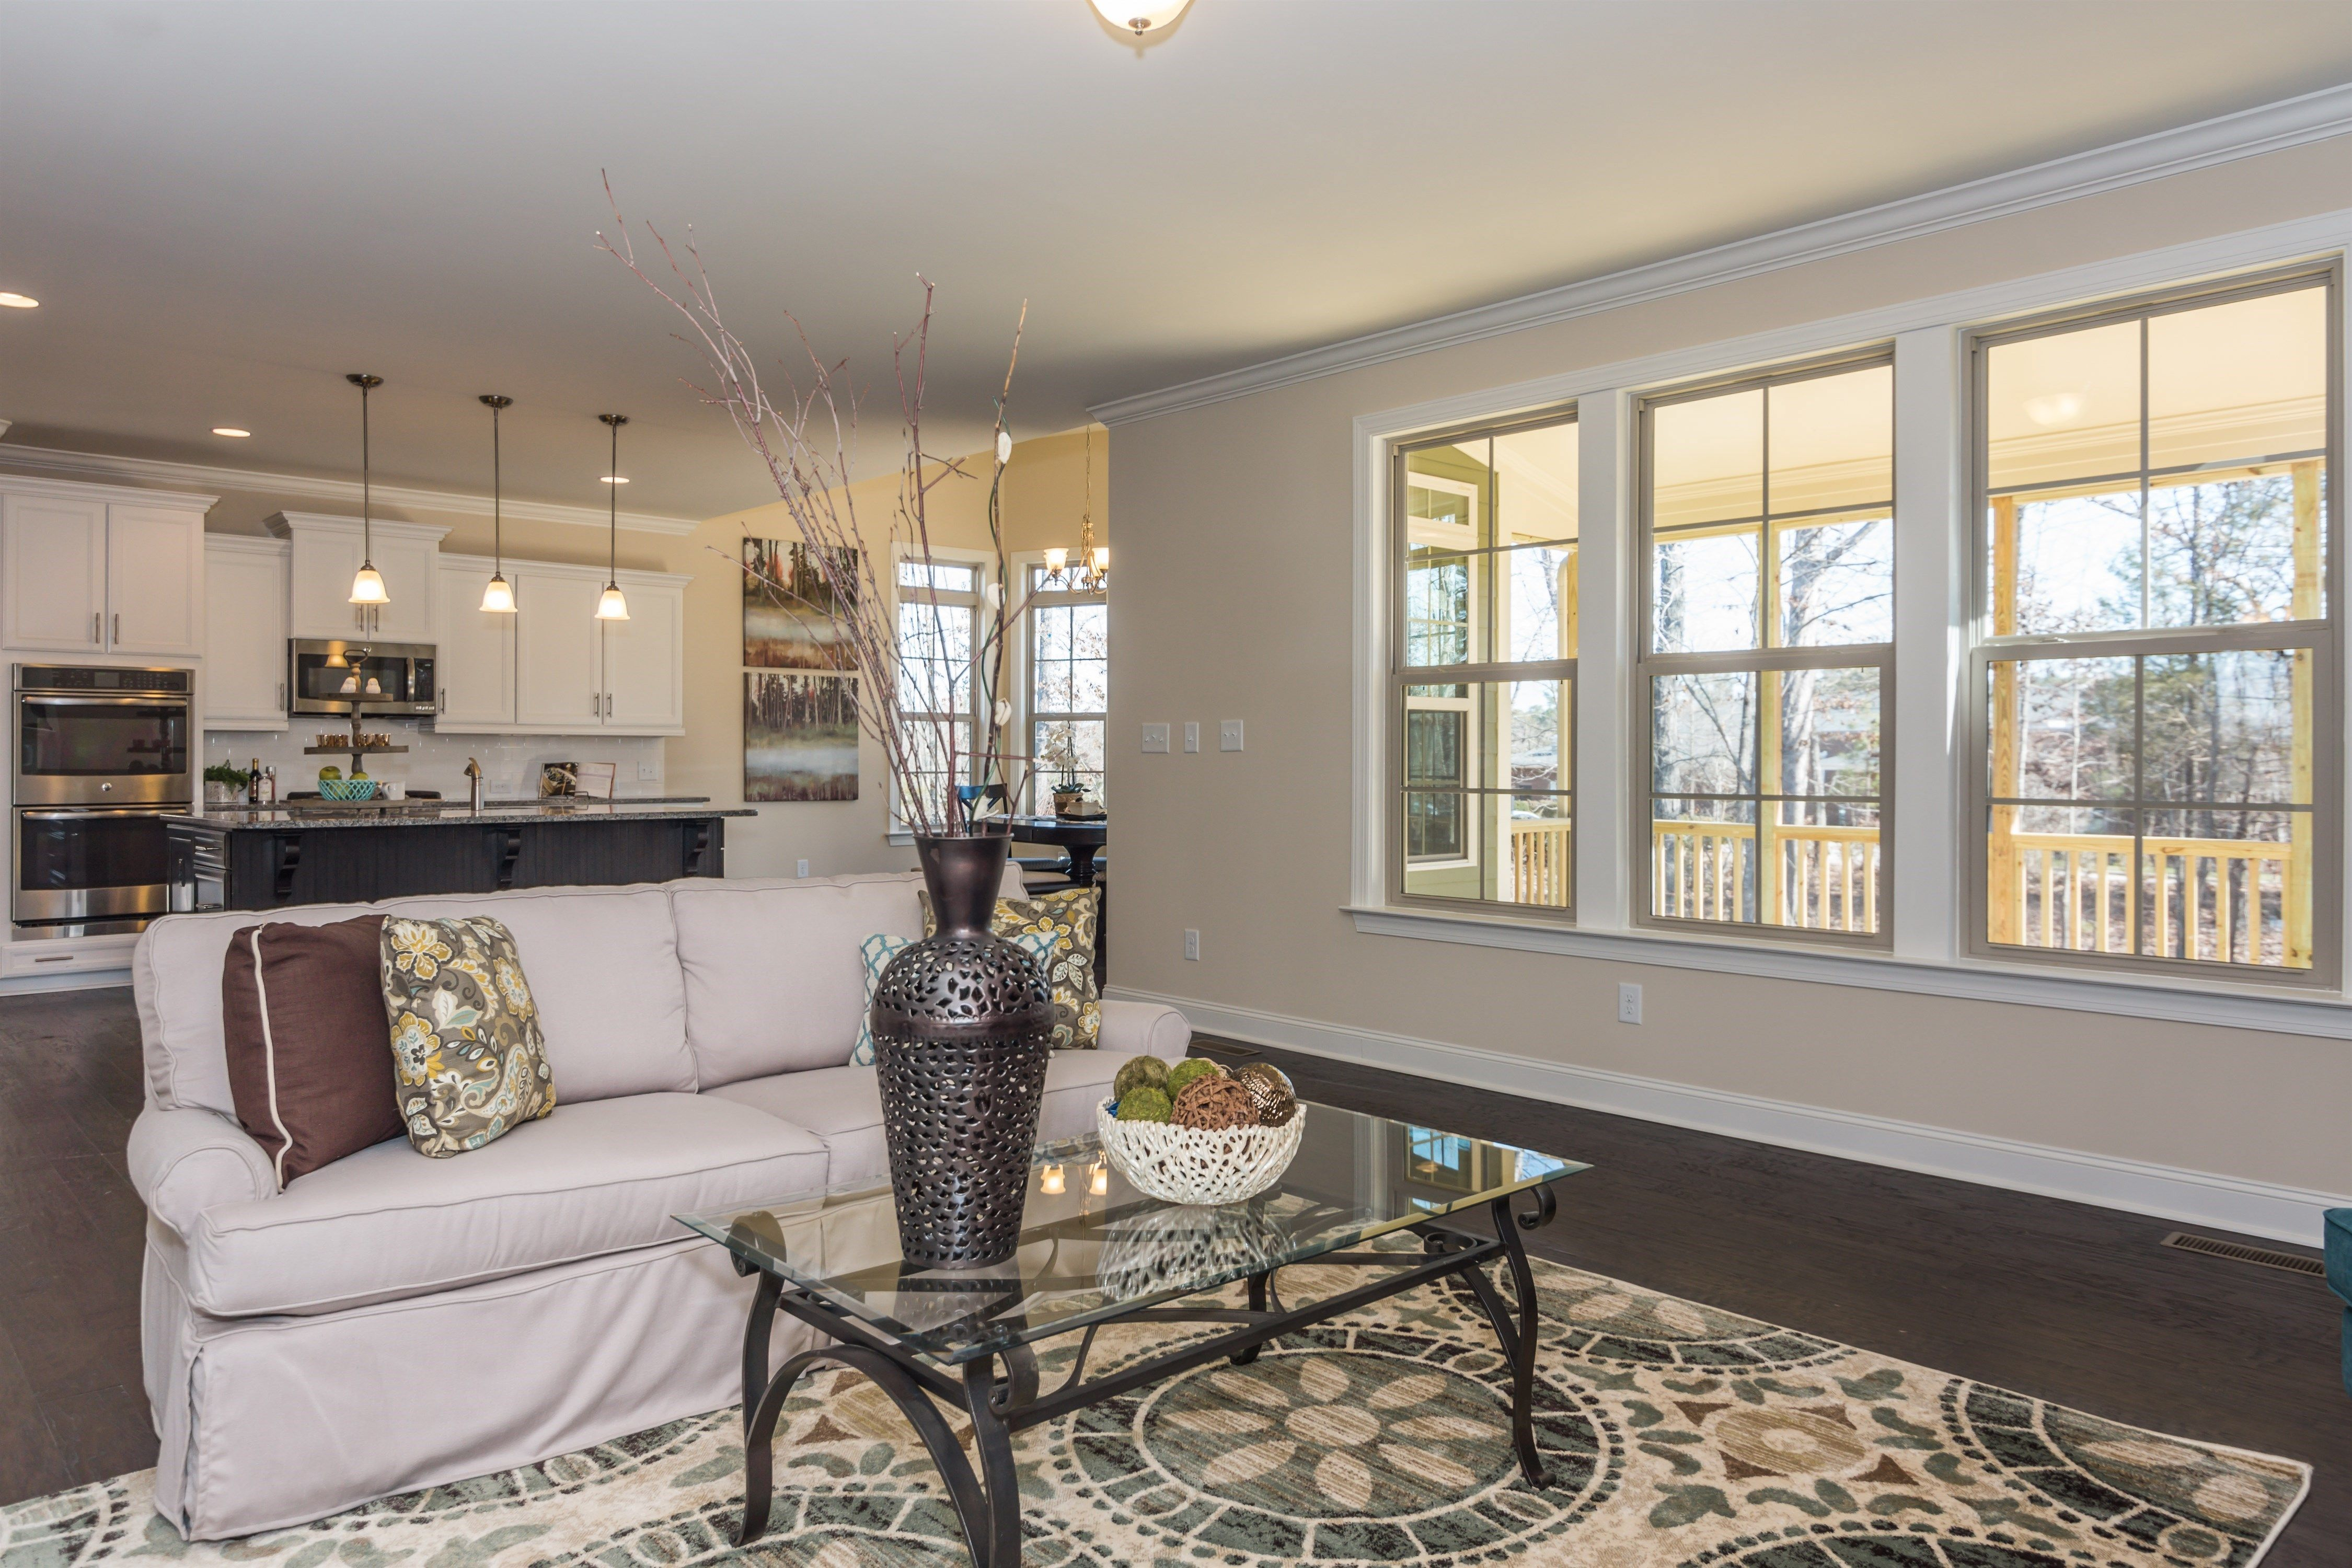 Large Windows Bring Natural Light Into This Bright And Spacious Family  Room. It Is Open To The Kitchen So You Can Entertain And Never Miss Being  Part Of The ... Part 77